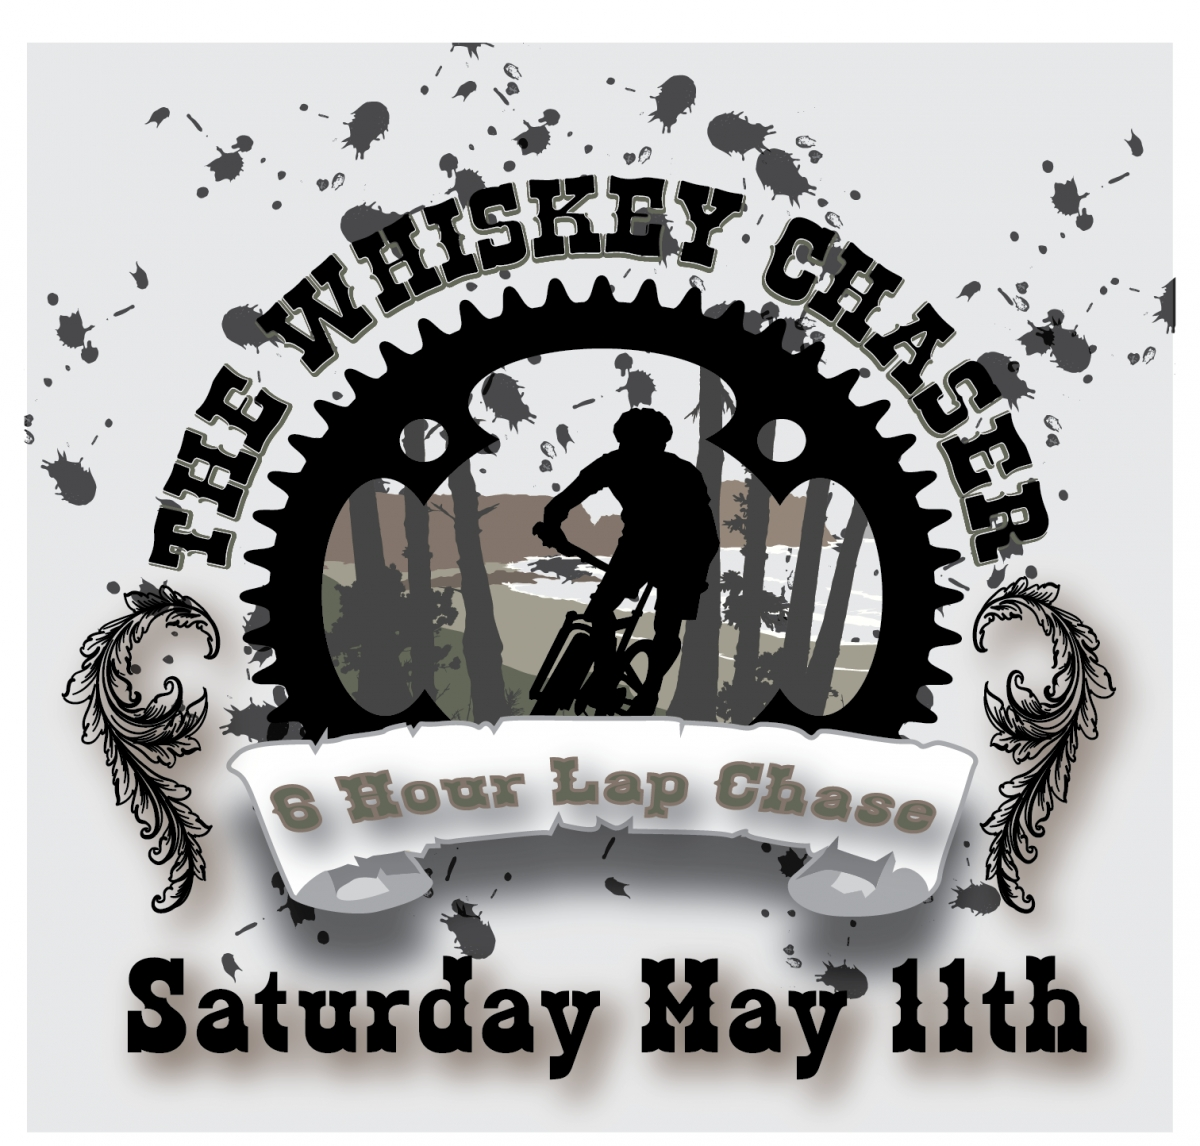 Whiskey Chaser - 6 Hour Lap Chase